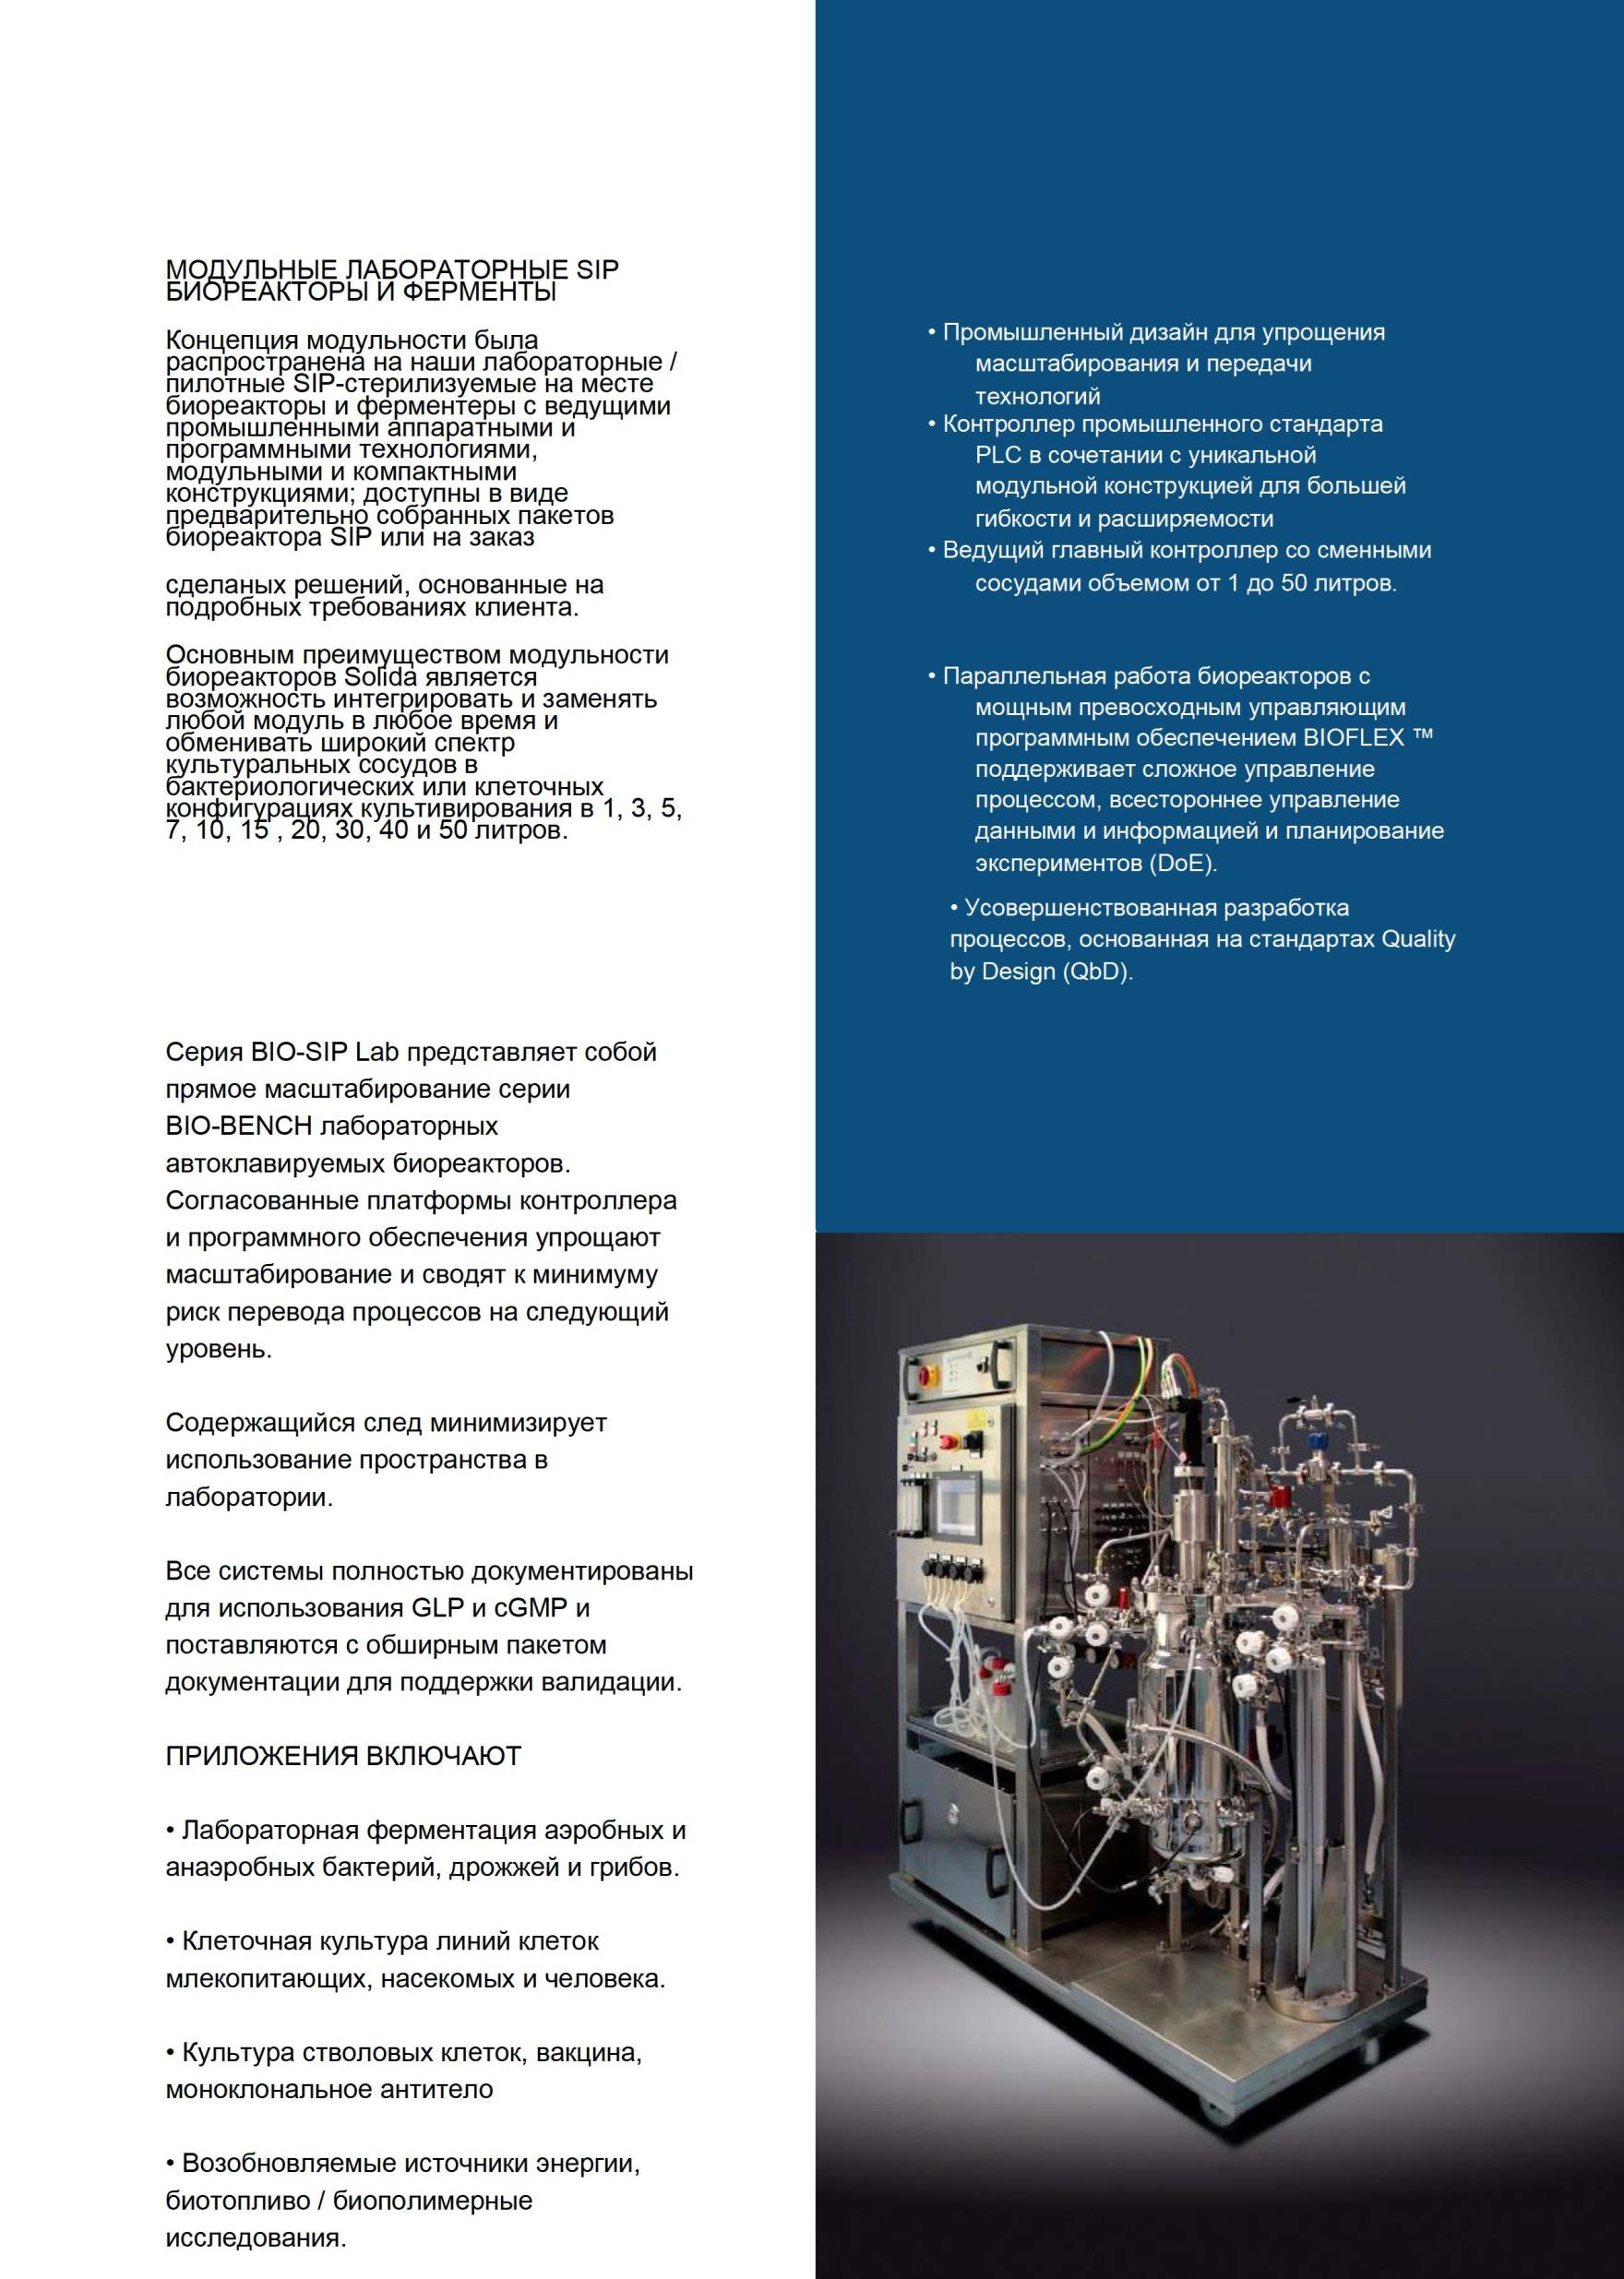 General Catalogue Solida Biotech GmBH2_compressed (2 - 0013